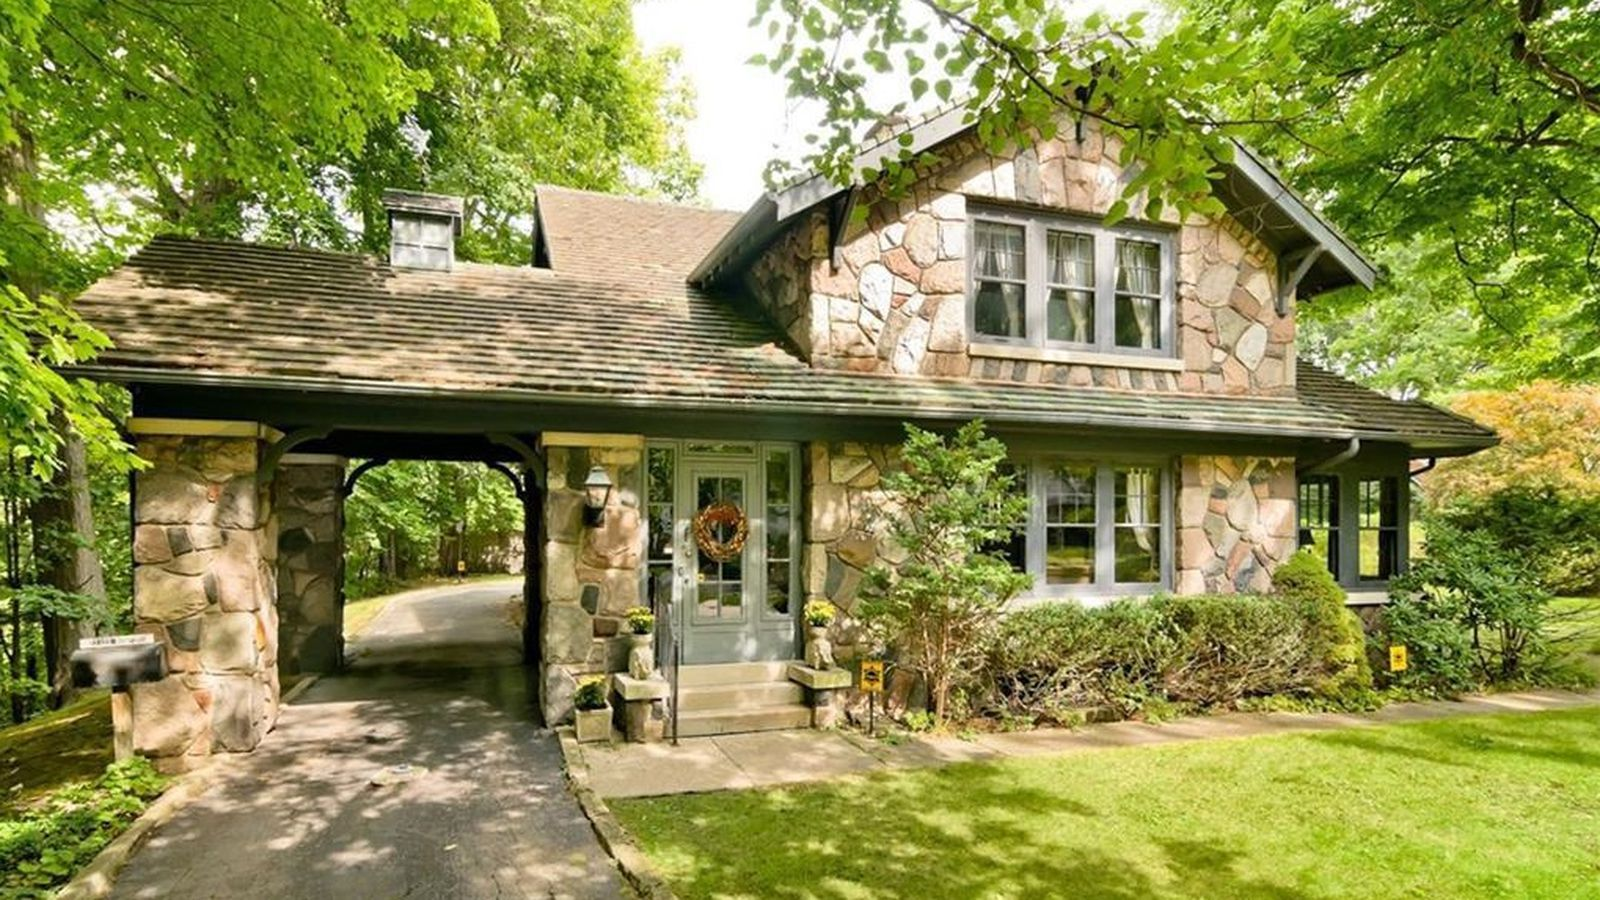 Perfect old redford stone house sells for 220k curbed for Cobblestone house